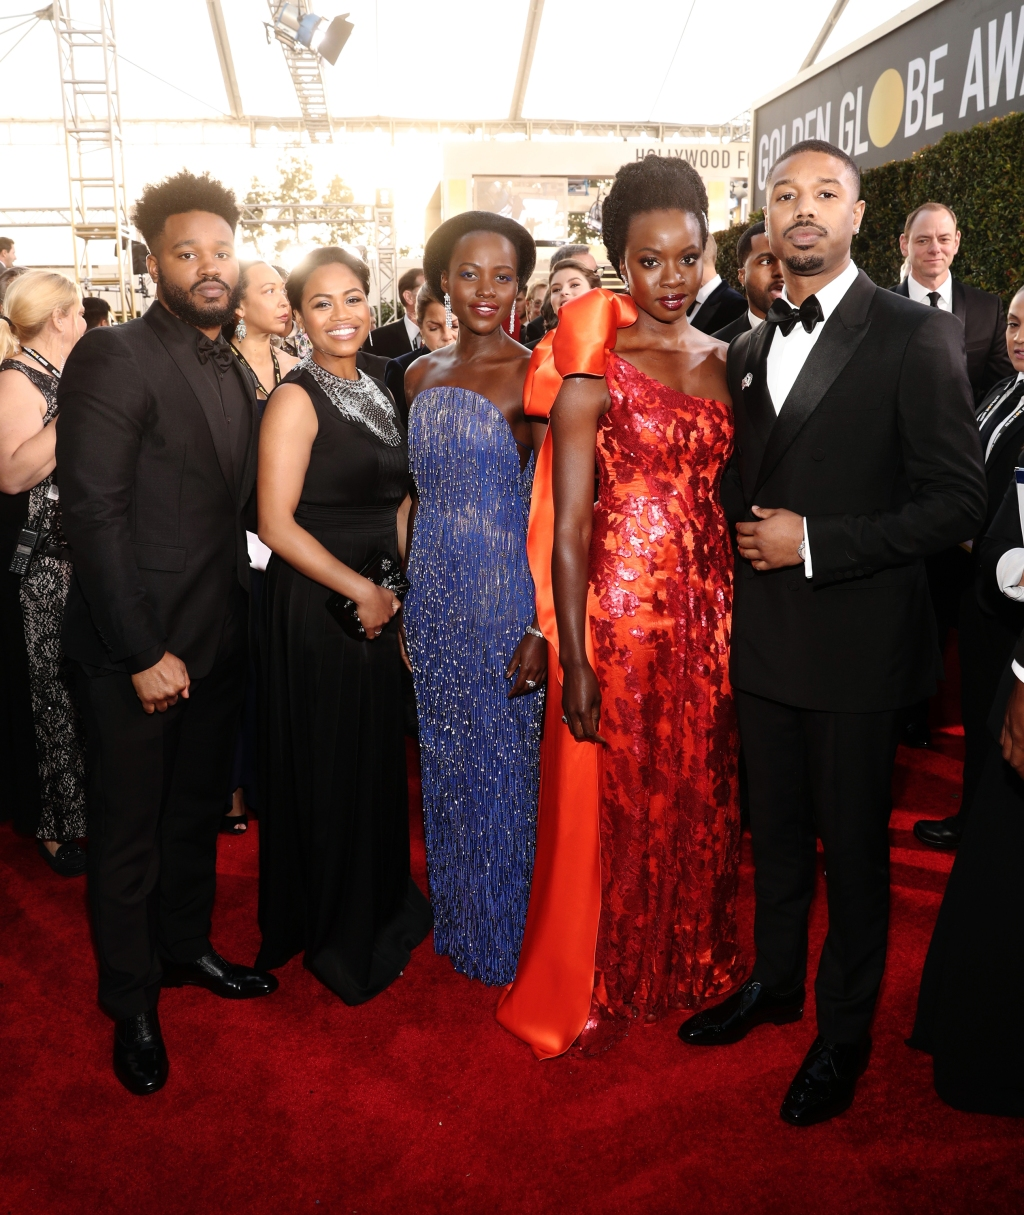 (From Left) Ryan Coogler, Zinzi Evans, Lupita Nyong'o, Danai Gurira, and Michael B. Jordan arrive to the 76th Annual Golden Globe Awards held at the Beverly Hilton Hotel on January 6, 2019.